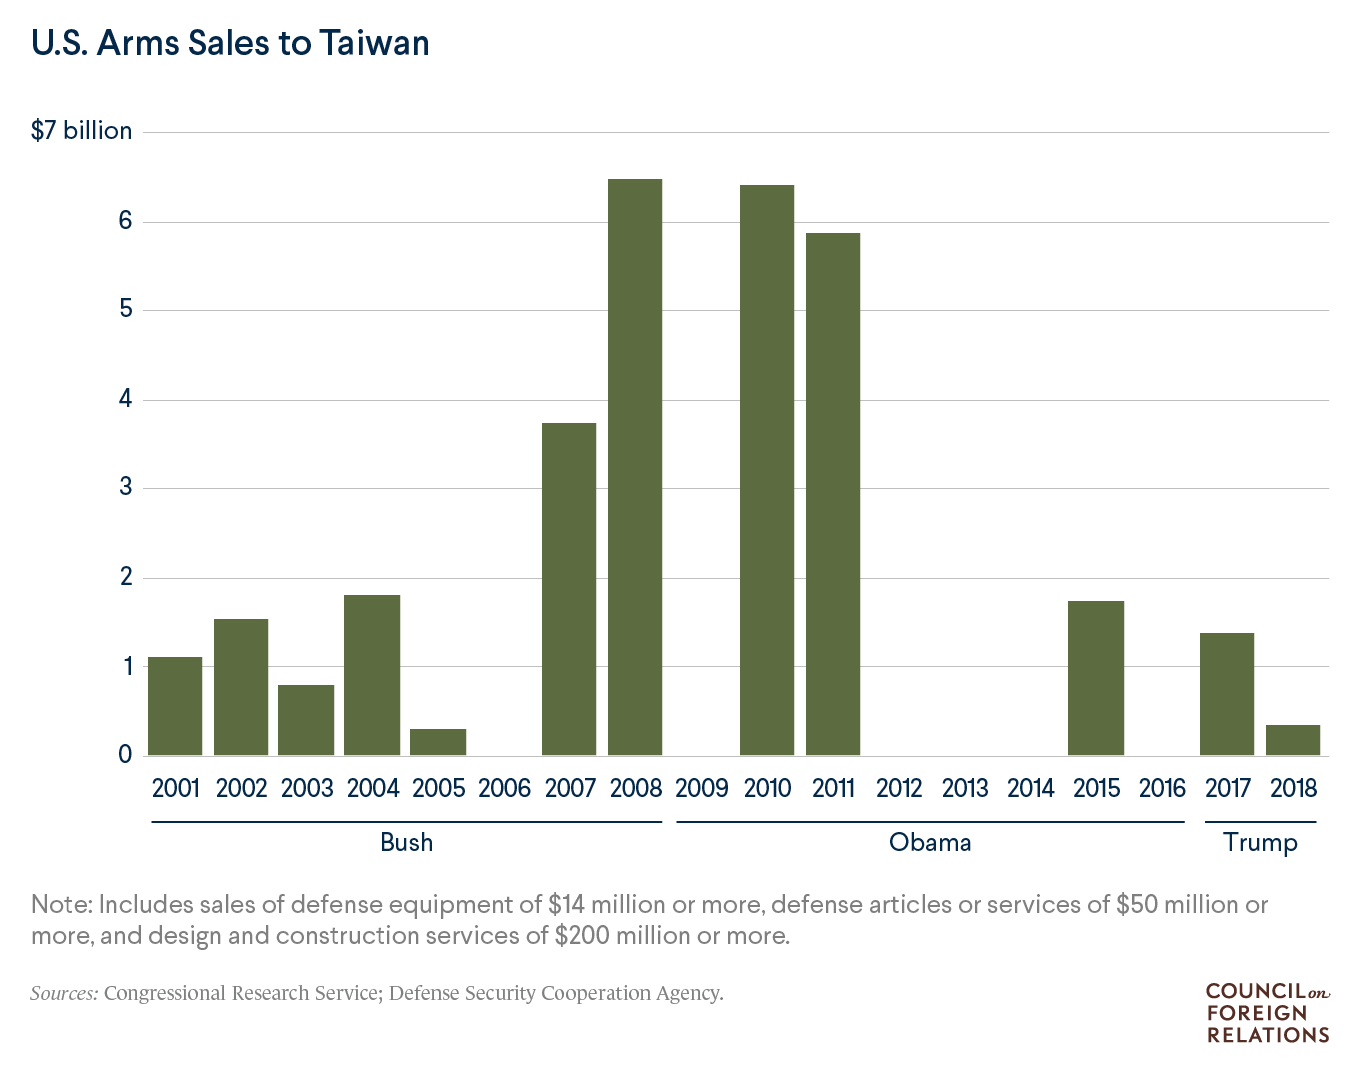 A chart showing U.S. arms sales to Taiwan since 2001.